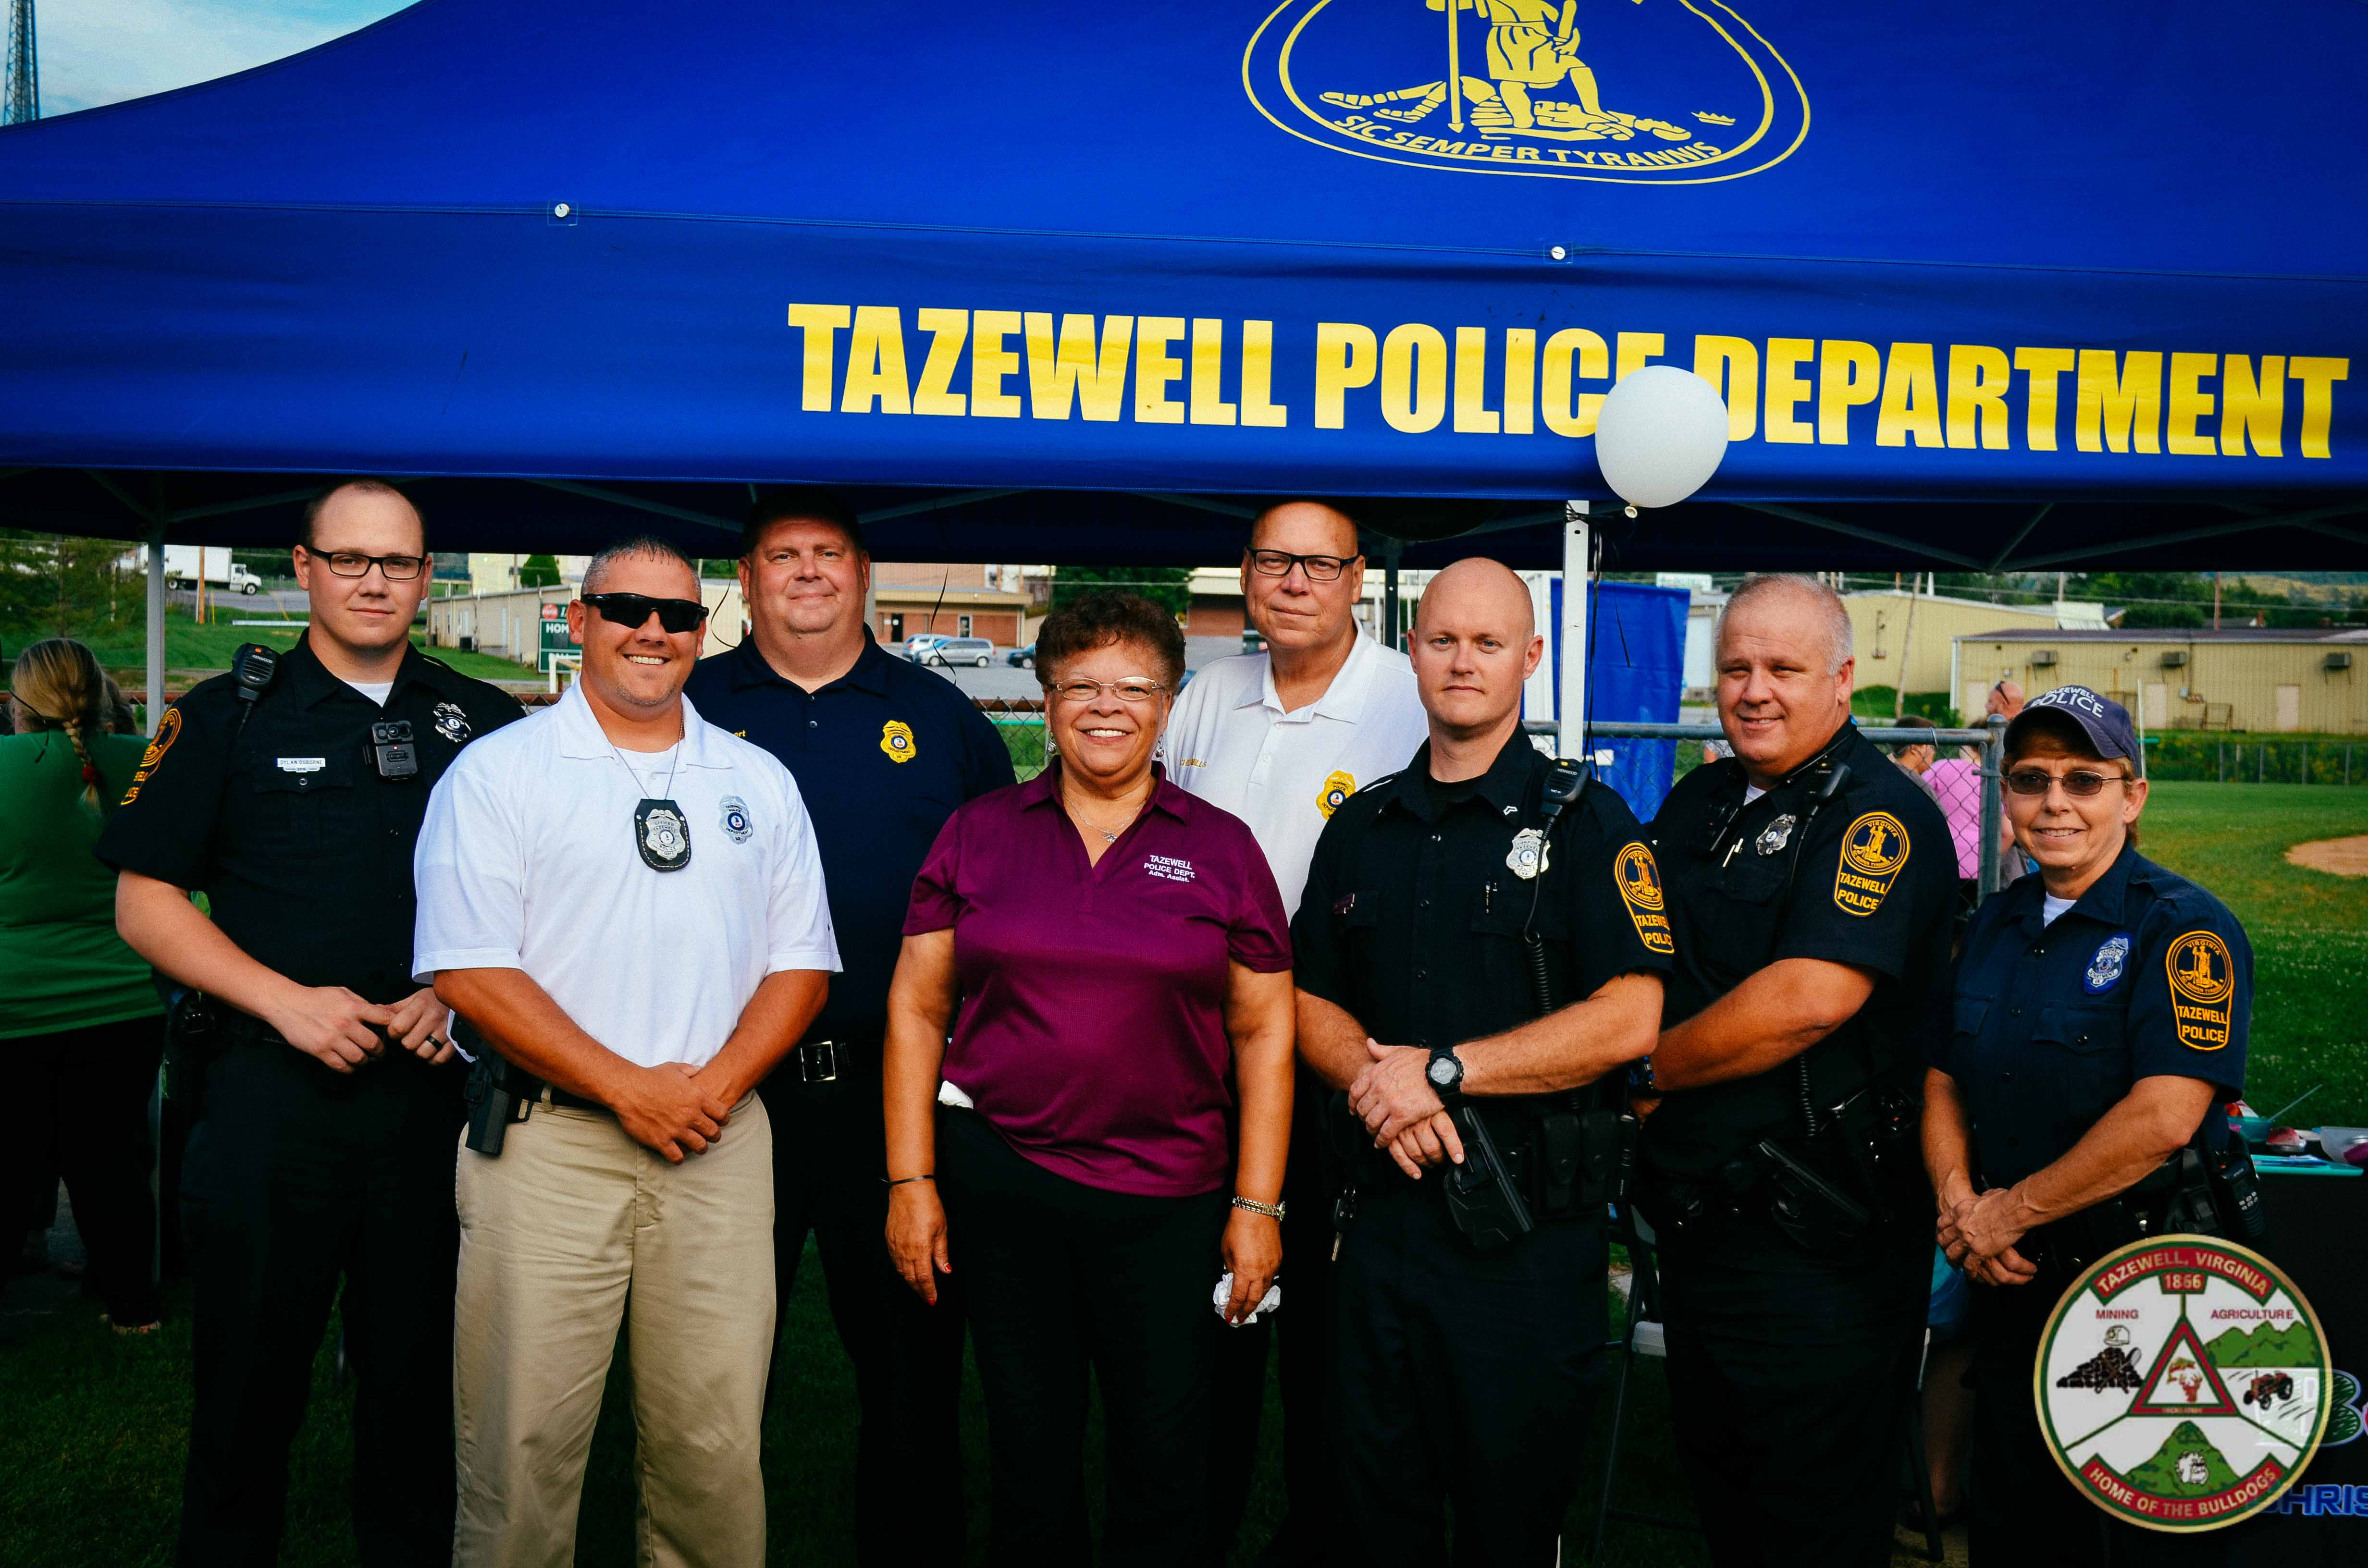 National Night Out Celebrated August 7, 2018